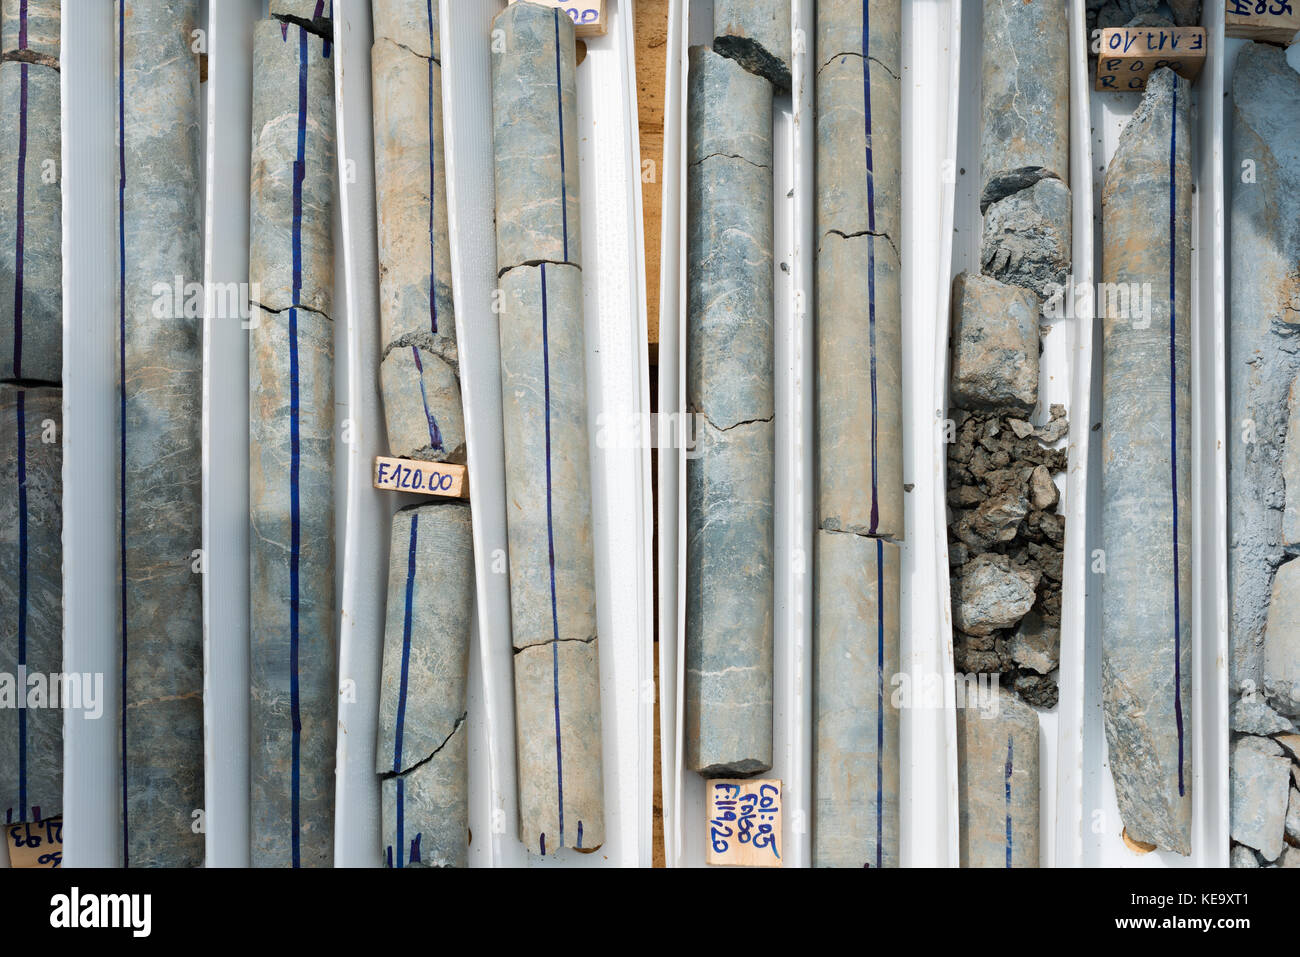 Drill cores classified in a box - Stock Image